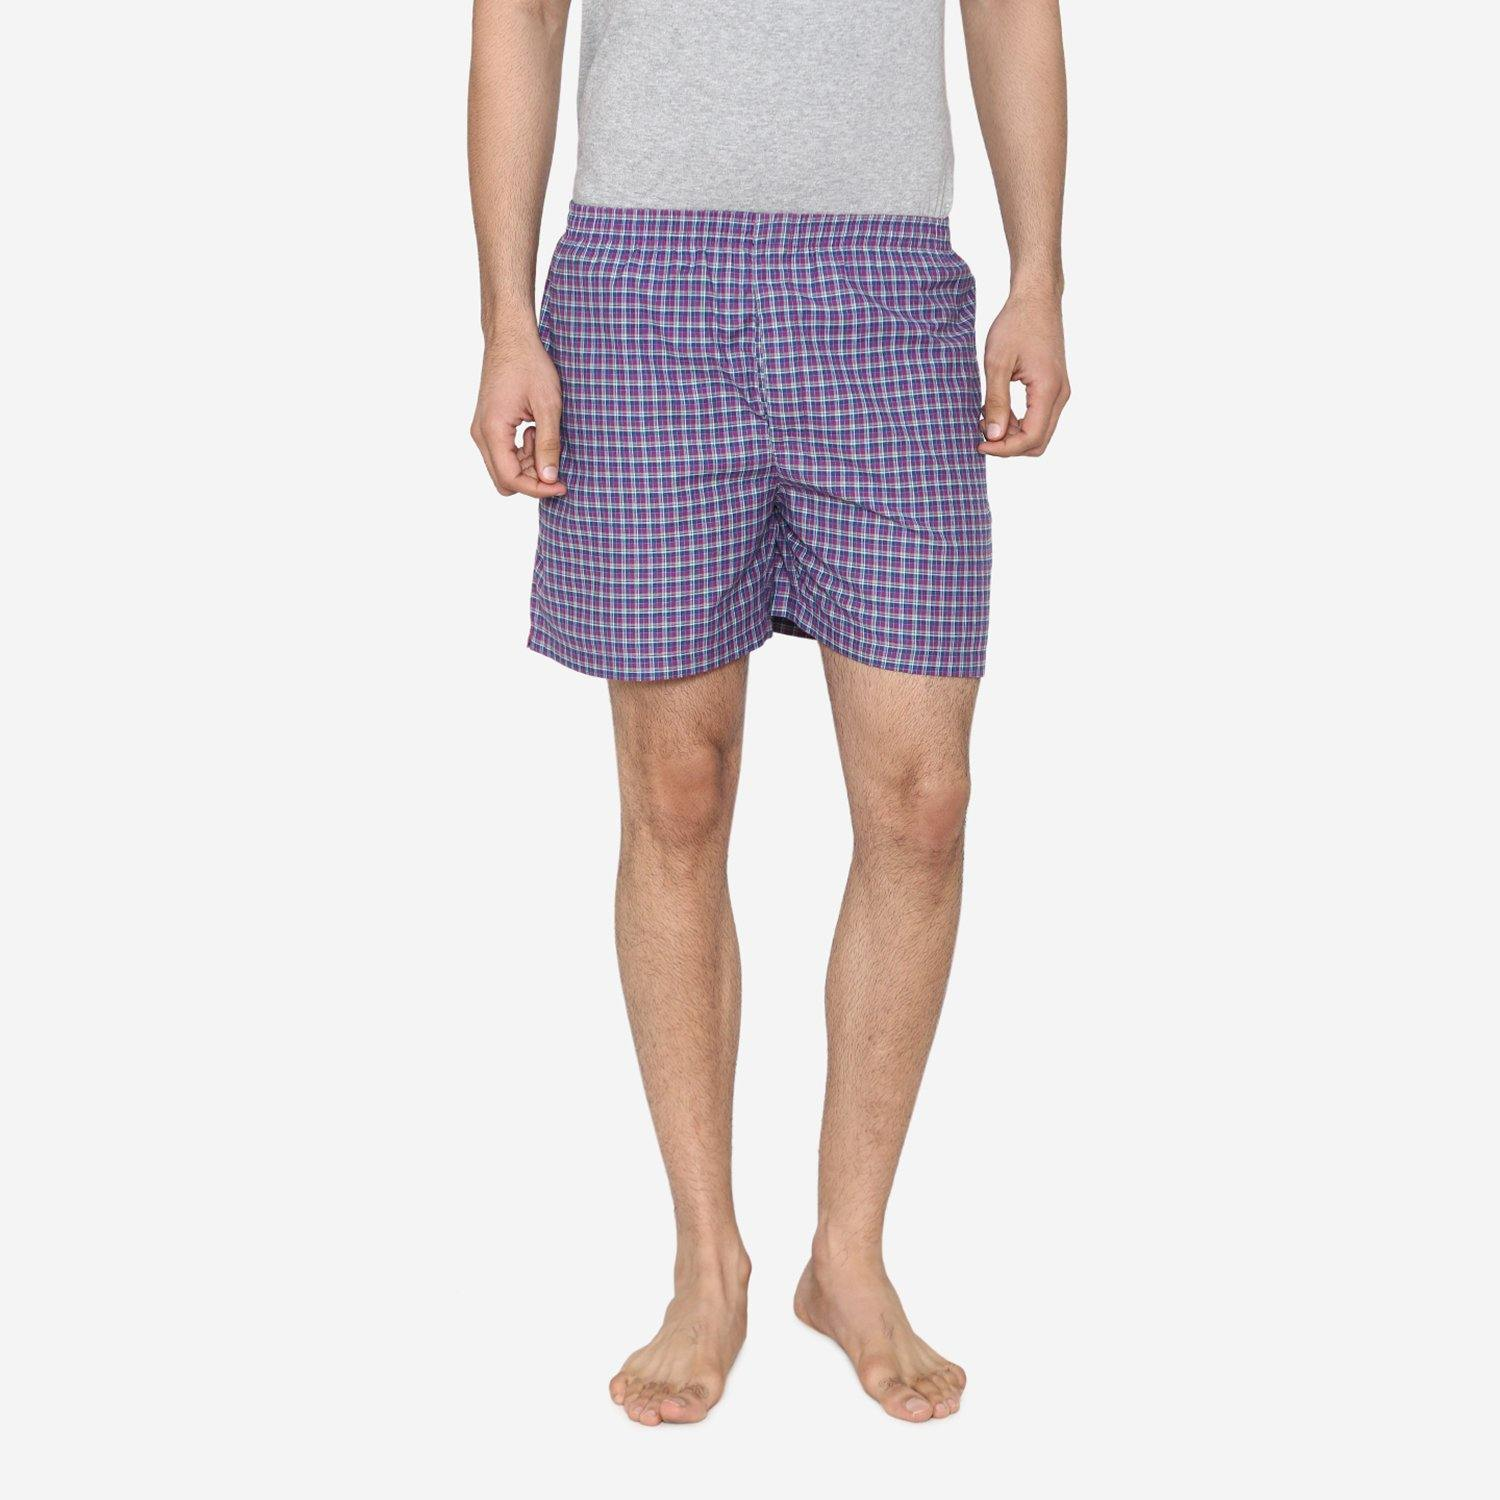 Men Classic Check - Prints woven Boxer Shorts - Dark Pink